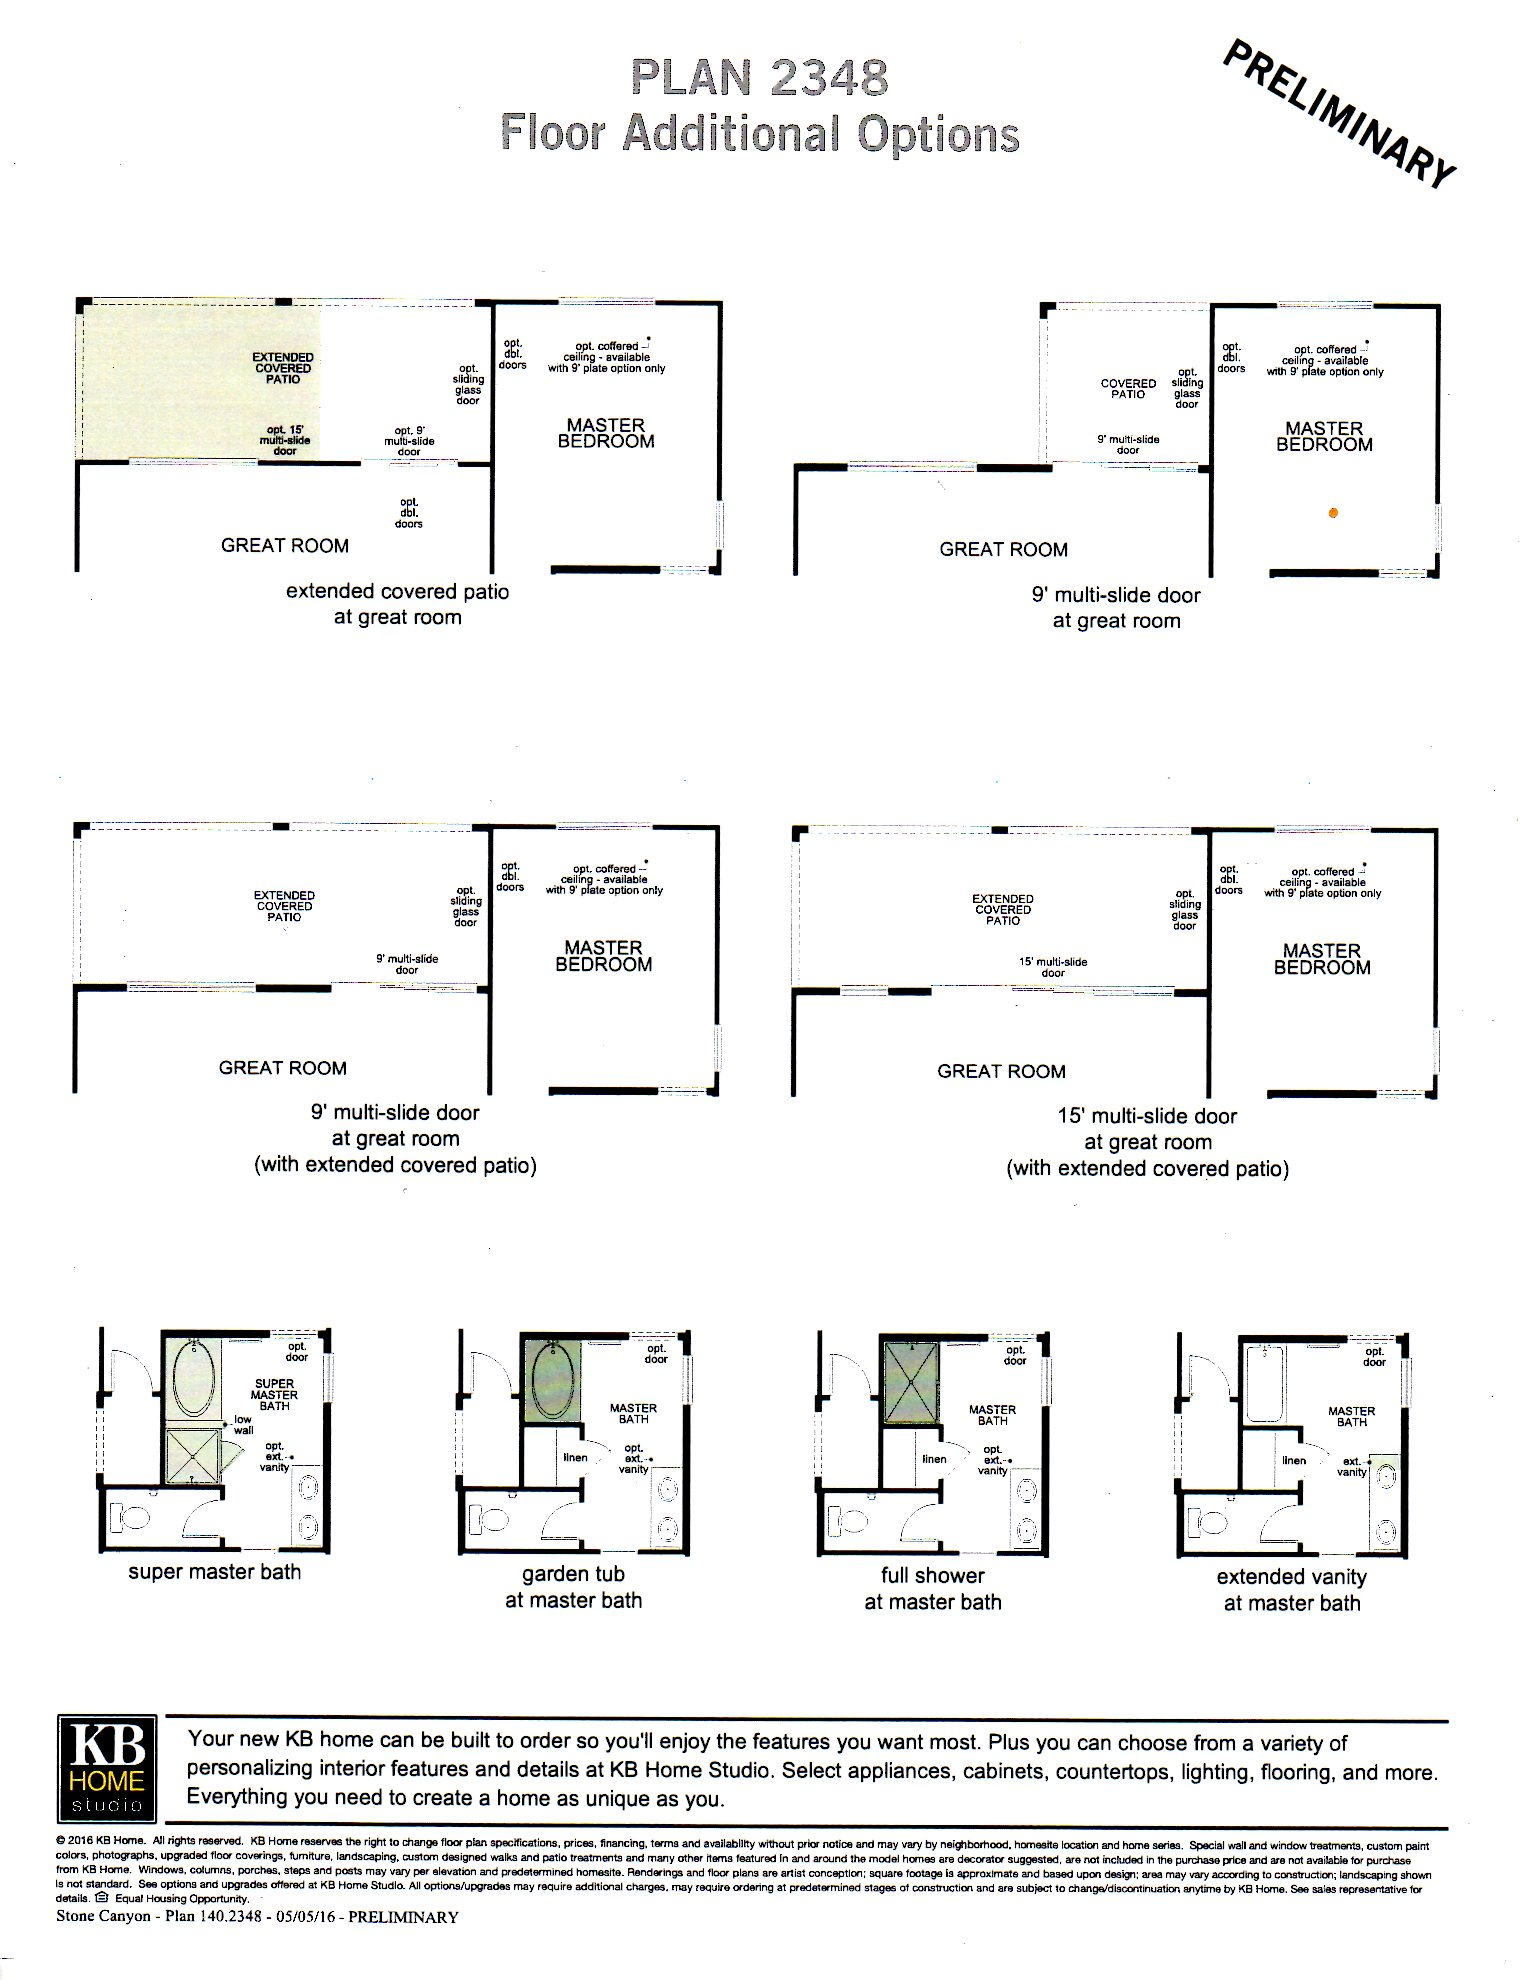 PLAN 2348 -- SINGLE LEVEL HOME